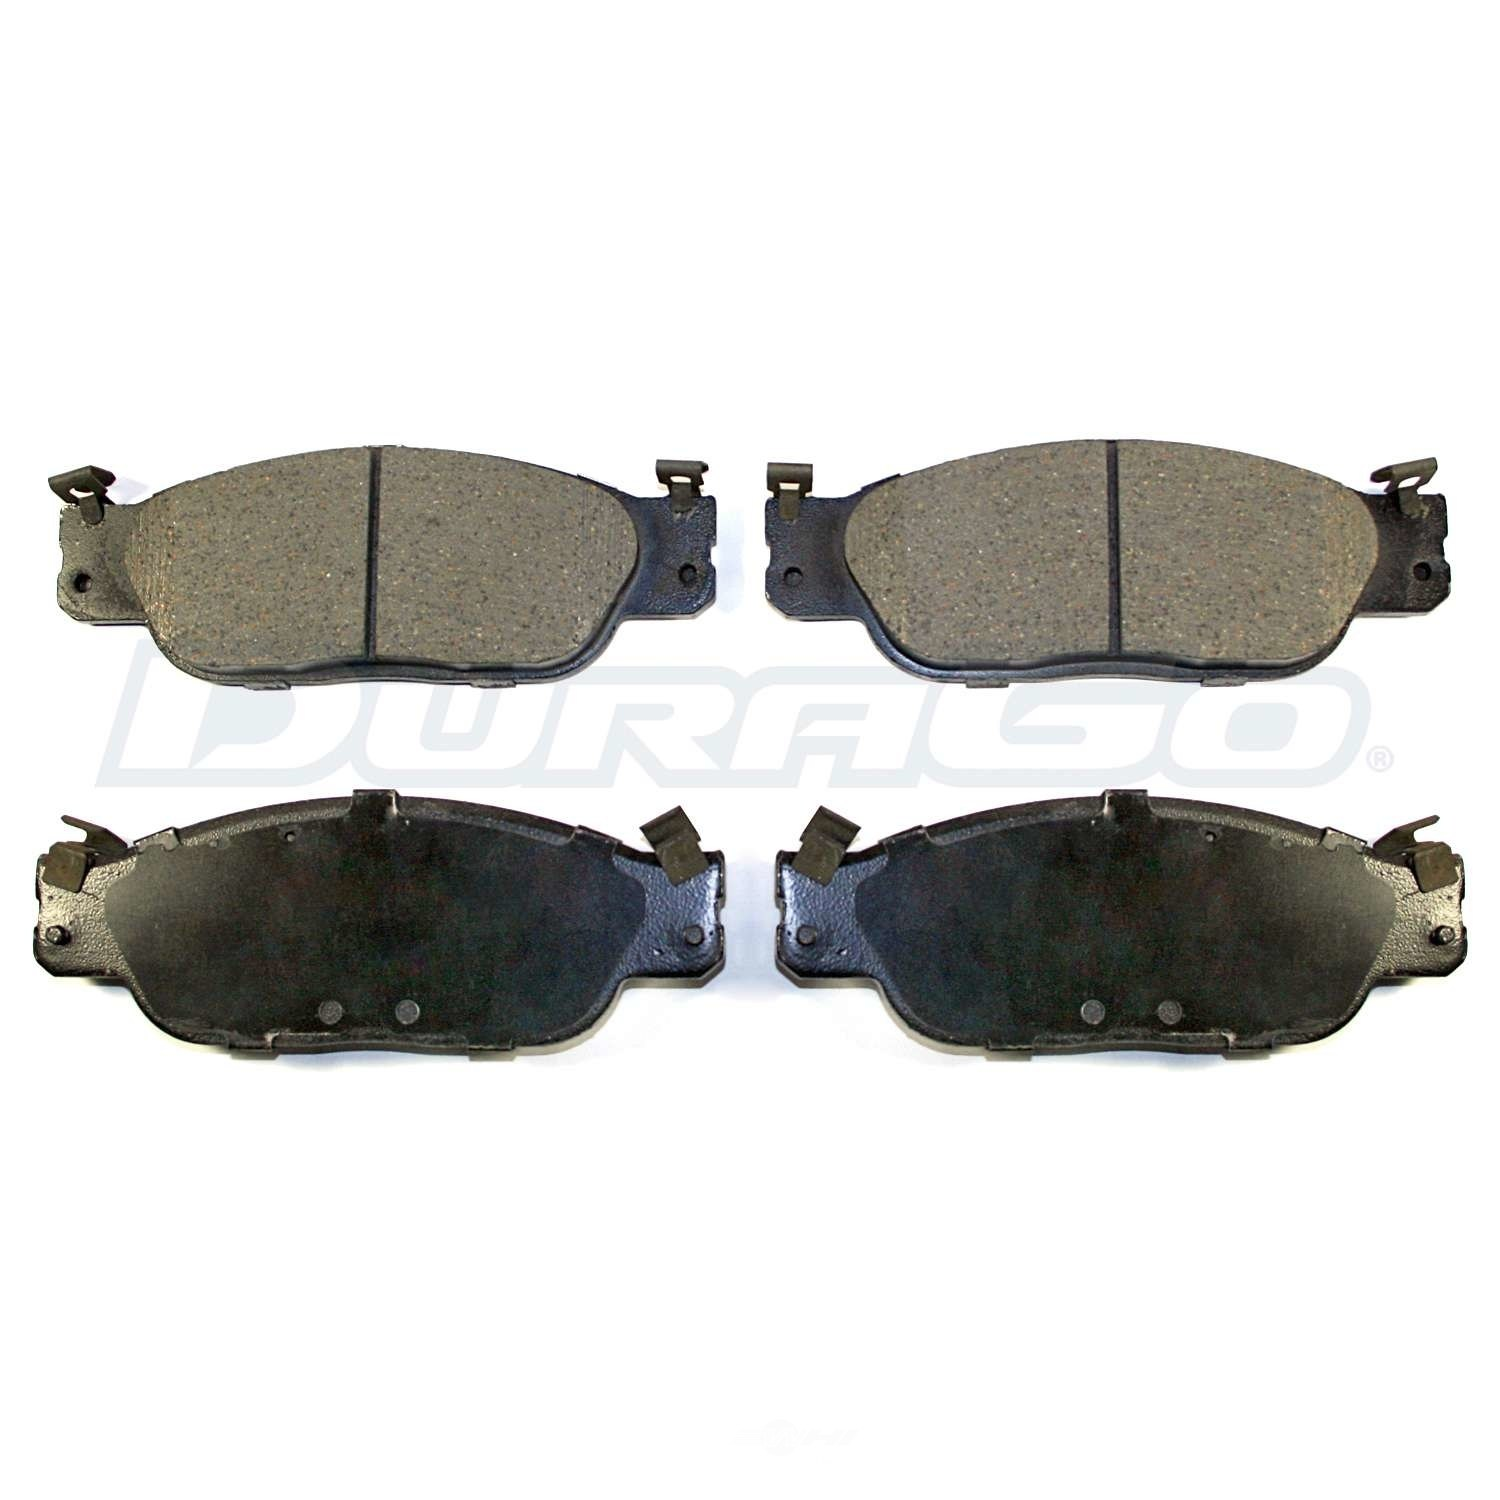 DURAGO - Disc Brake Pad - D48 BP849AMS